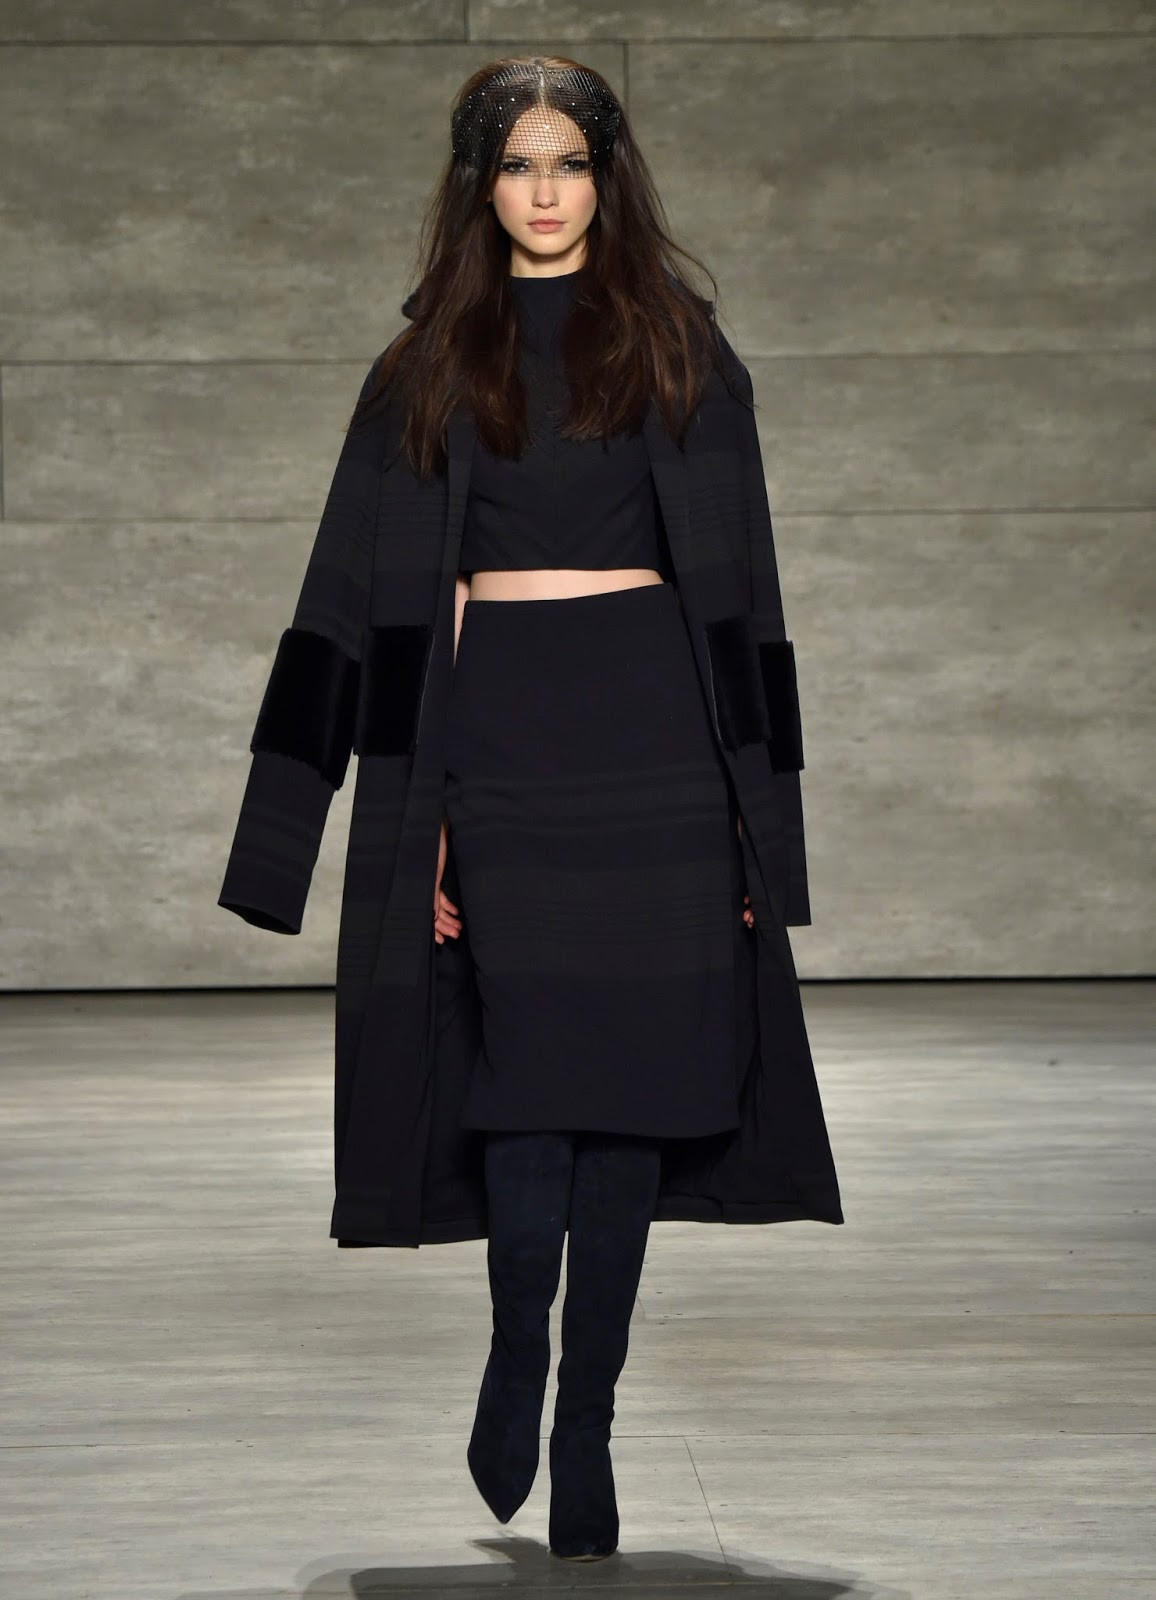 NYFW: FALL 2015 PAMELLA ROLAND'S PARIS IN THE 70S INSPIRATION